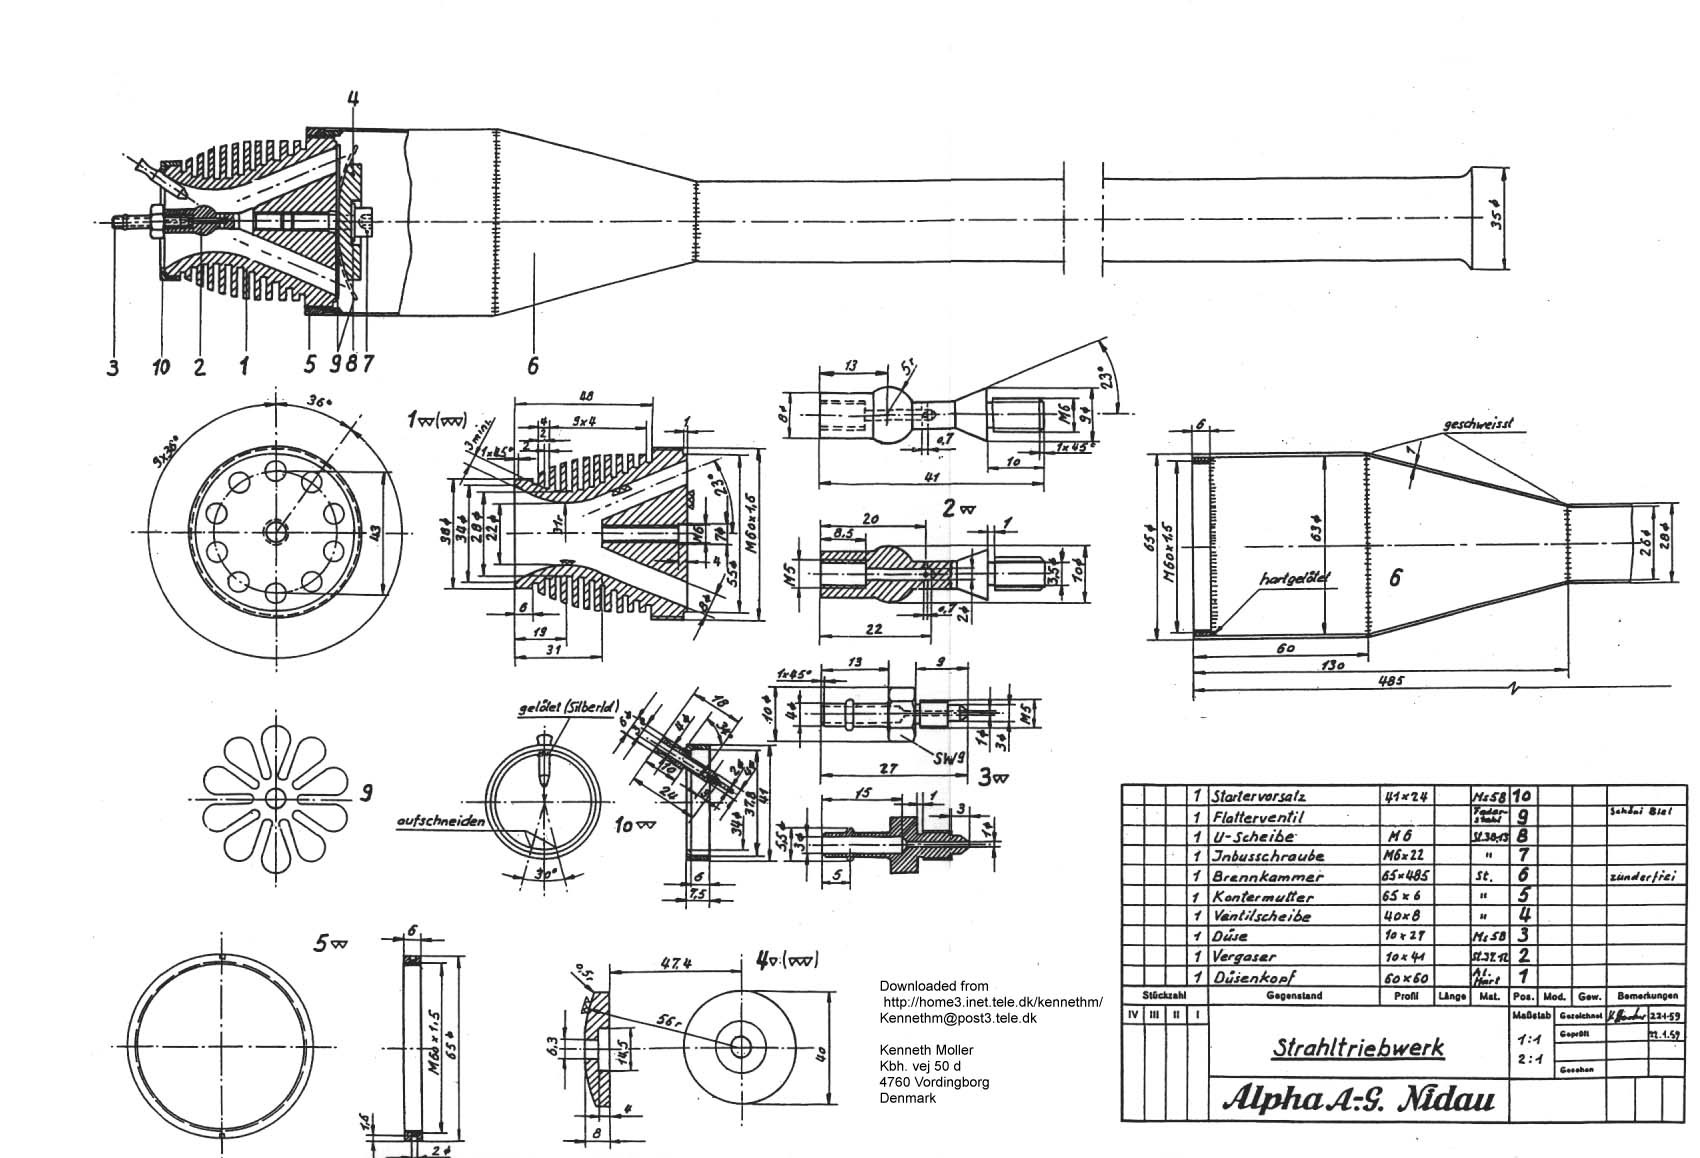 Pulse Jet Engine Diagram Pulse Jet Engine Just to Download Of Pulse Jet Engine Diagram